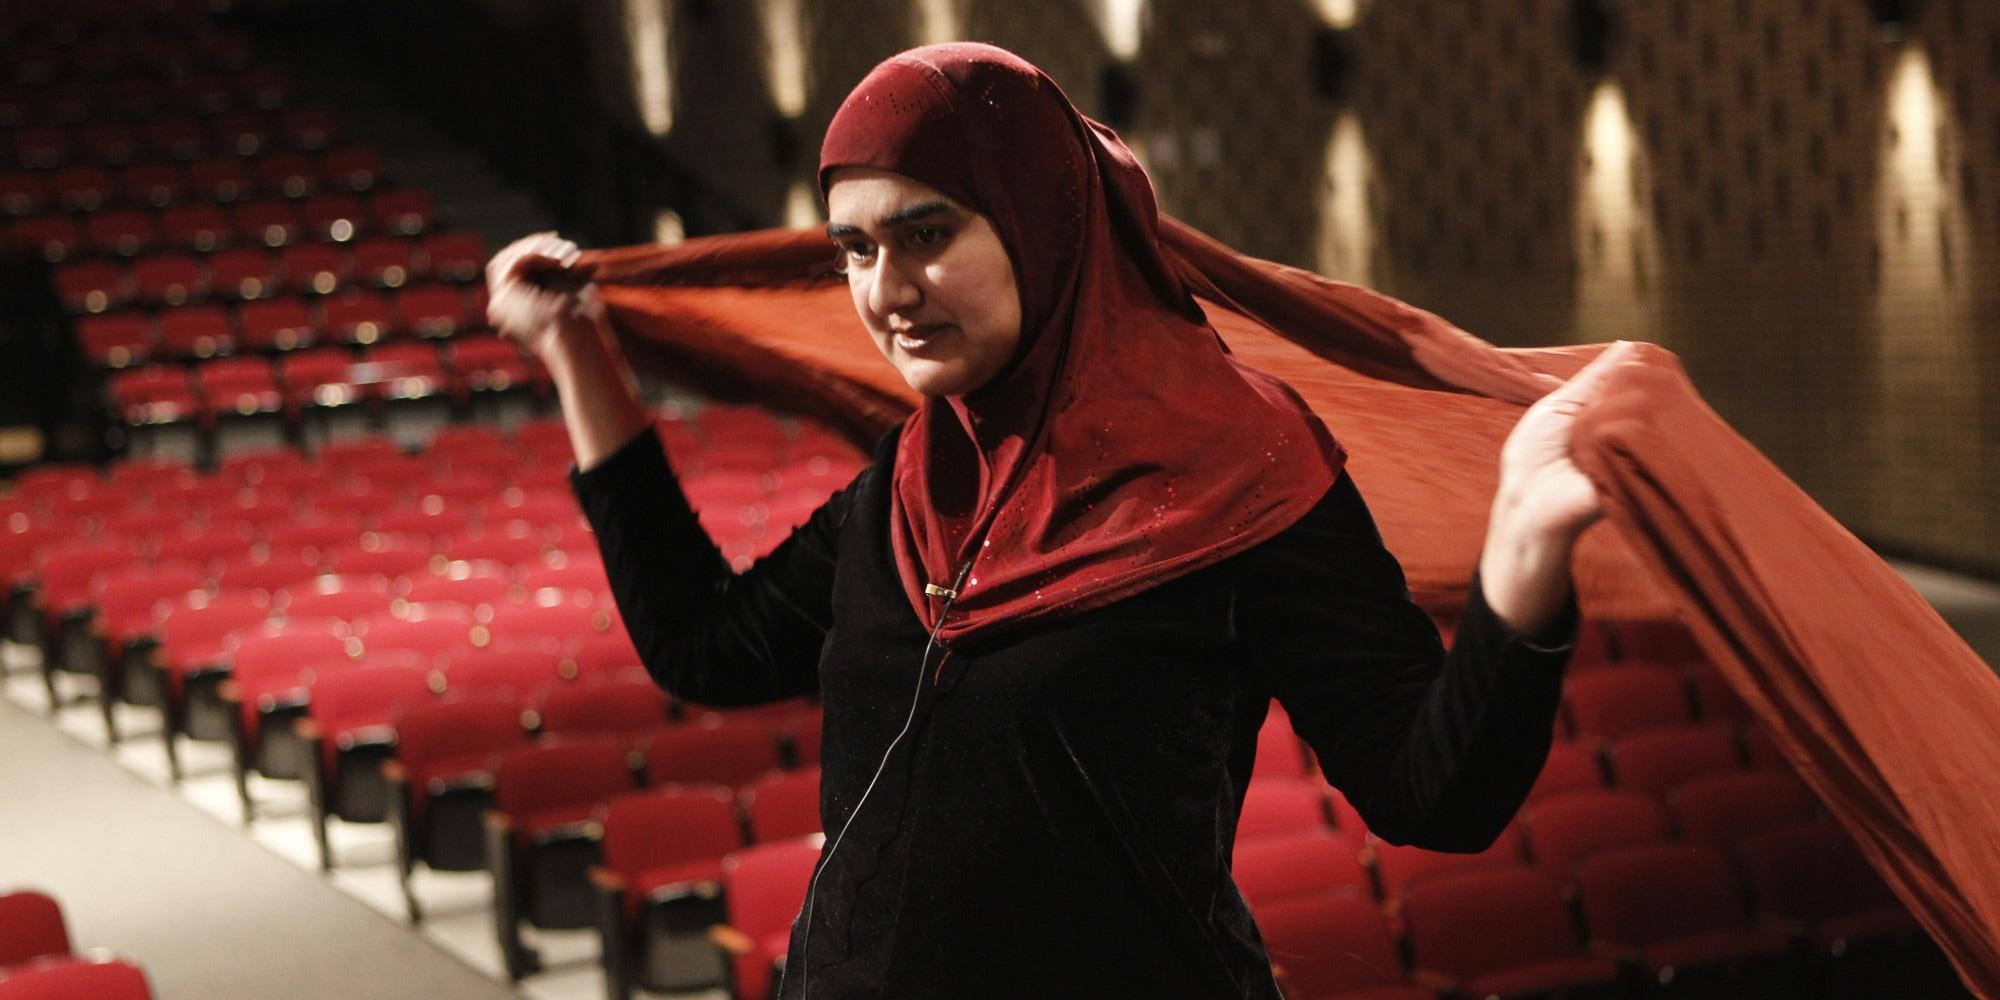 Playwright and actress Rohina Malik, formerly of Skokie and a Niles North High School graduate, prepares April 13, 2011 for a performance at Niles North, where she did three monologues as Muslim women characters. (Chris Walker/Chicago Tribune/MCT via Getty Images)